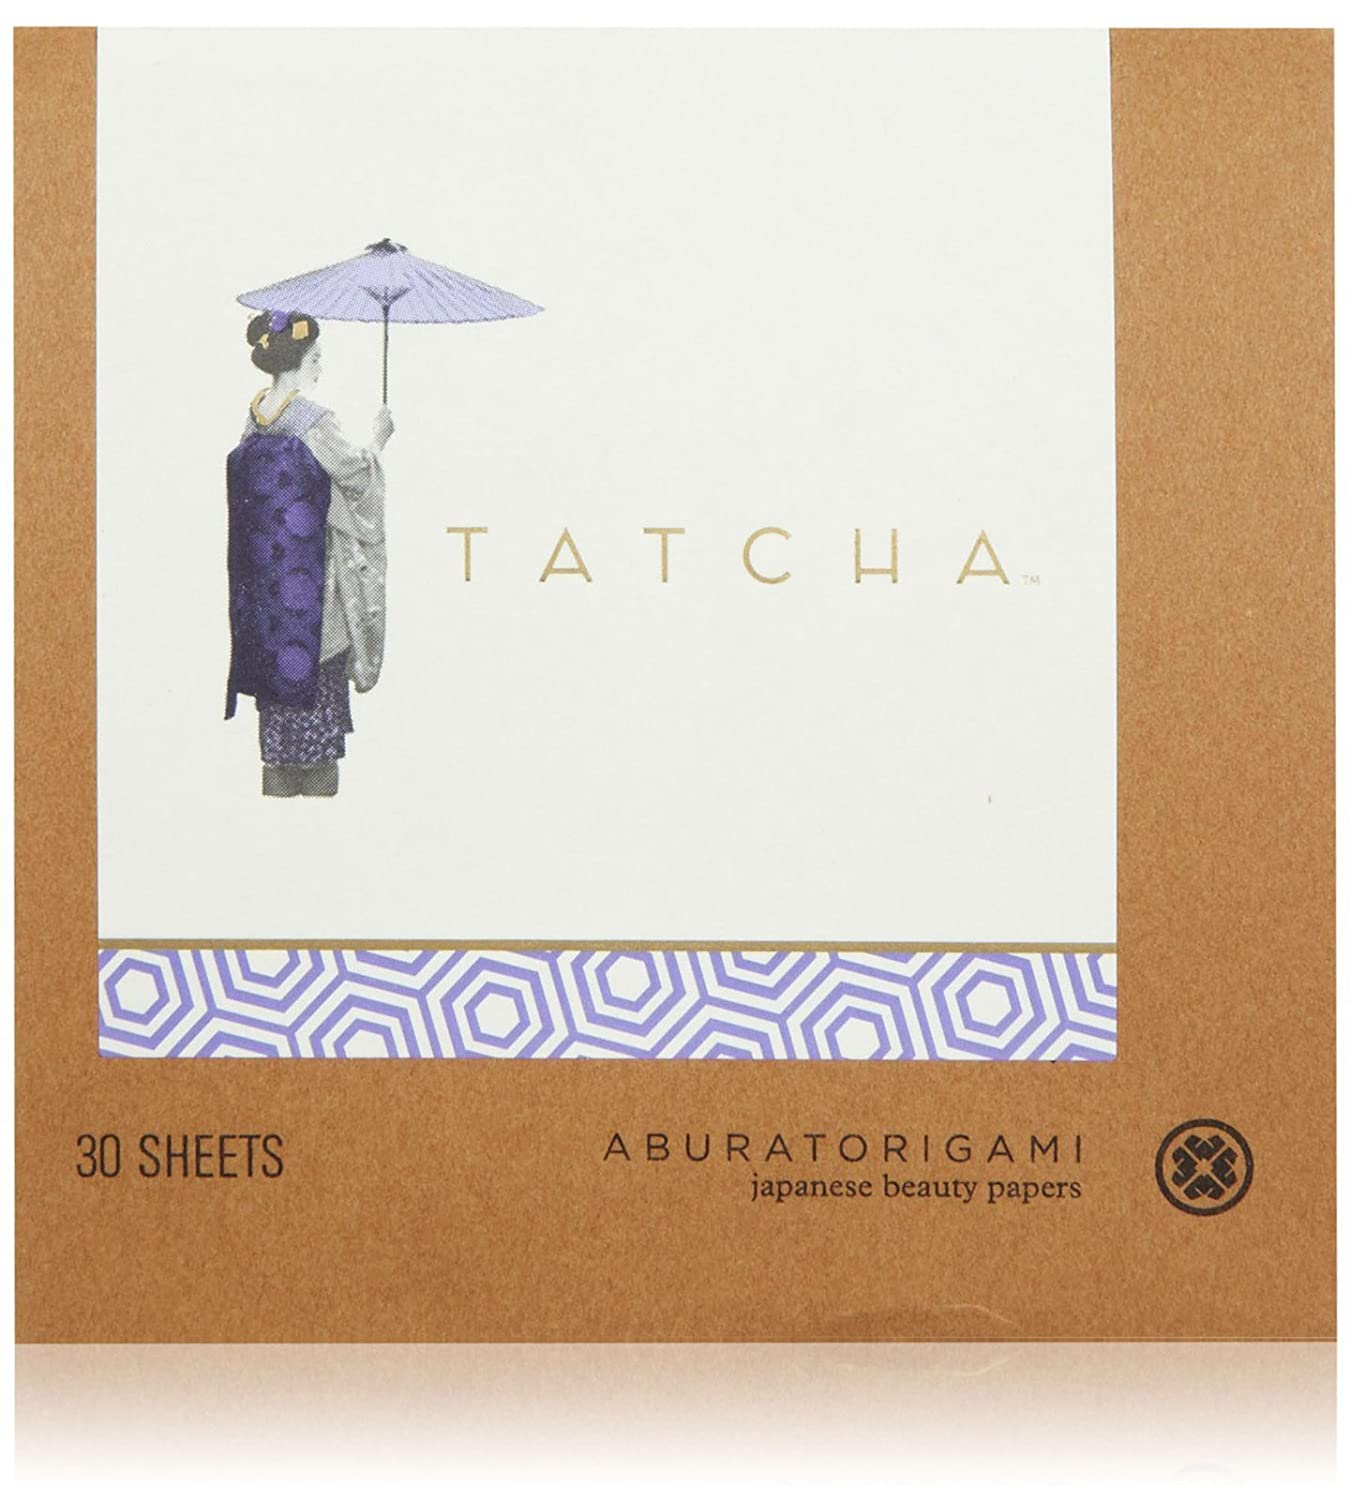 Tatcha Aburatorigami Blotting Papers Aub1001